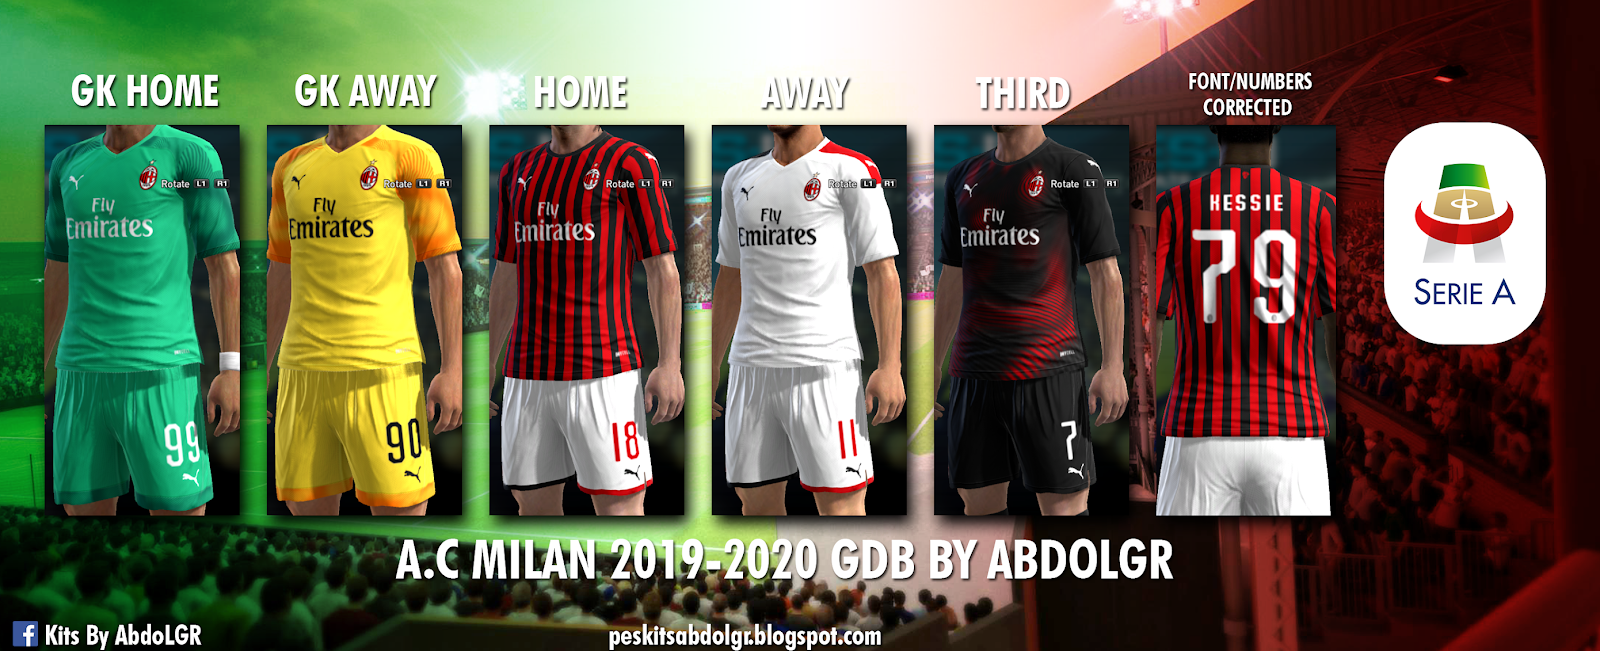 buy popular d0370 fb2cf PES 2013 AC Milan 2019/20 kits by AbdoLGR - Minosta4u